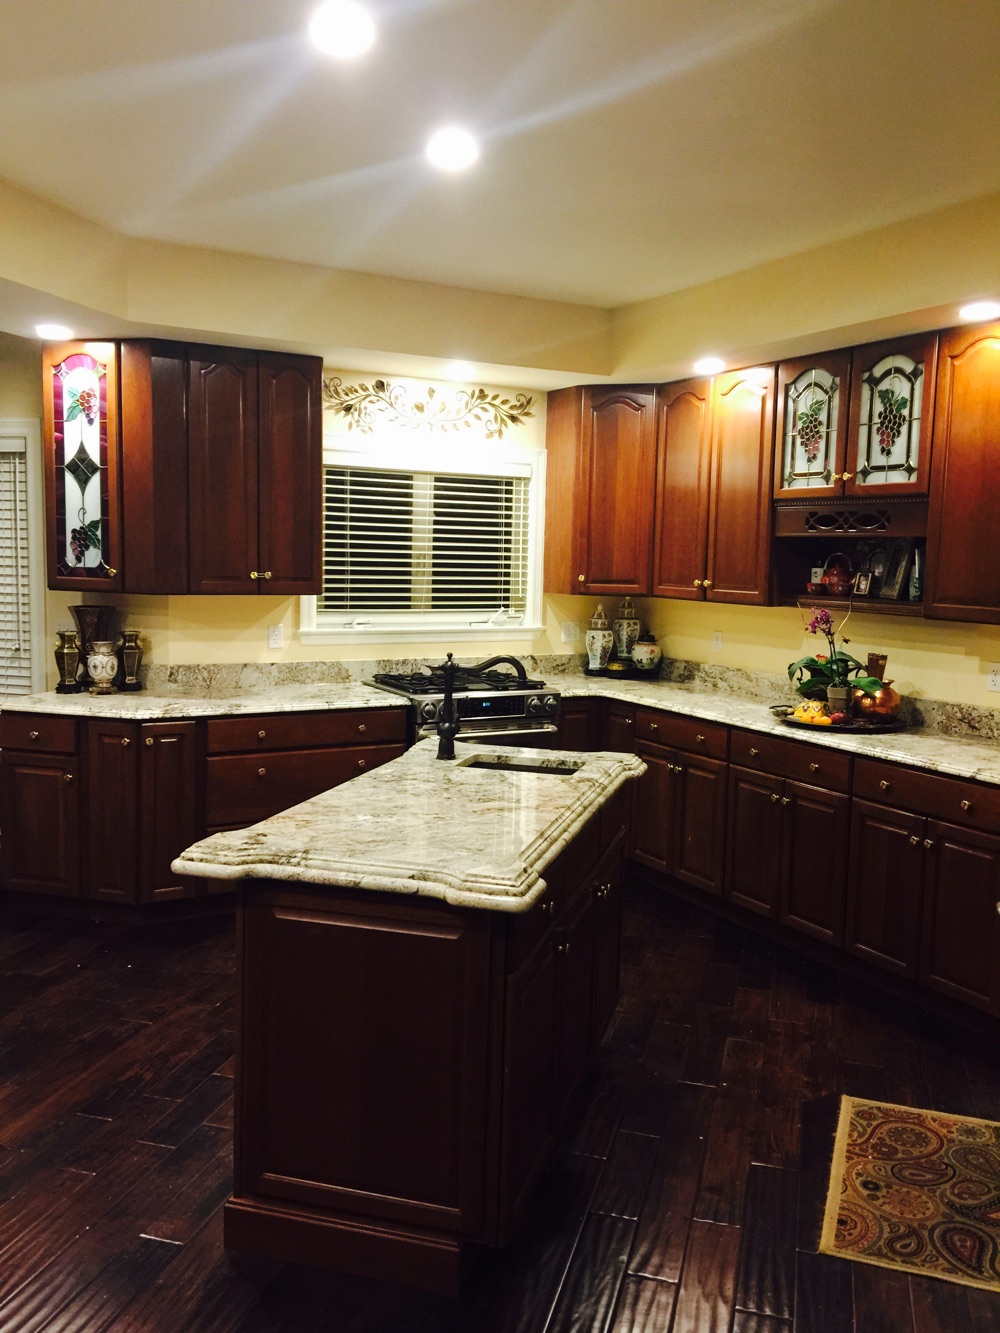 Installing Granite or Cabinet Refacing Which Comes First